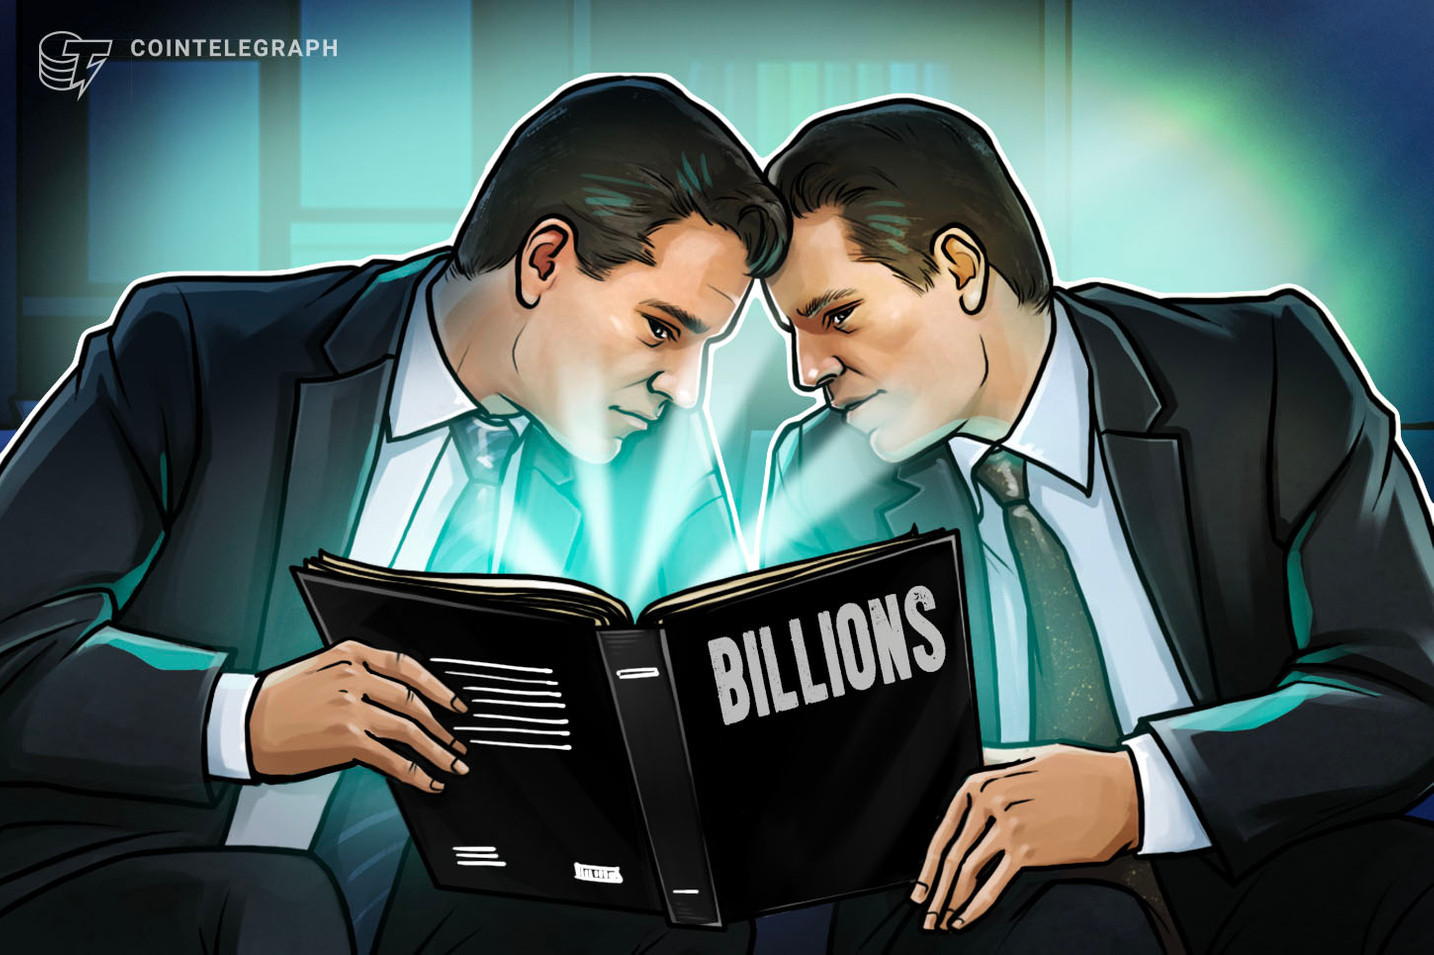 Winklevoss Biographer Writes Newest, BTC-Heavy Episode of 'Billions'